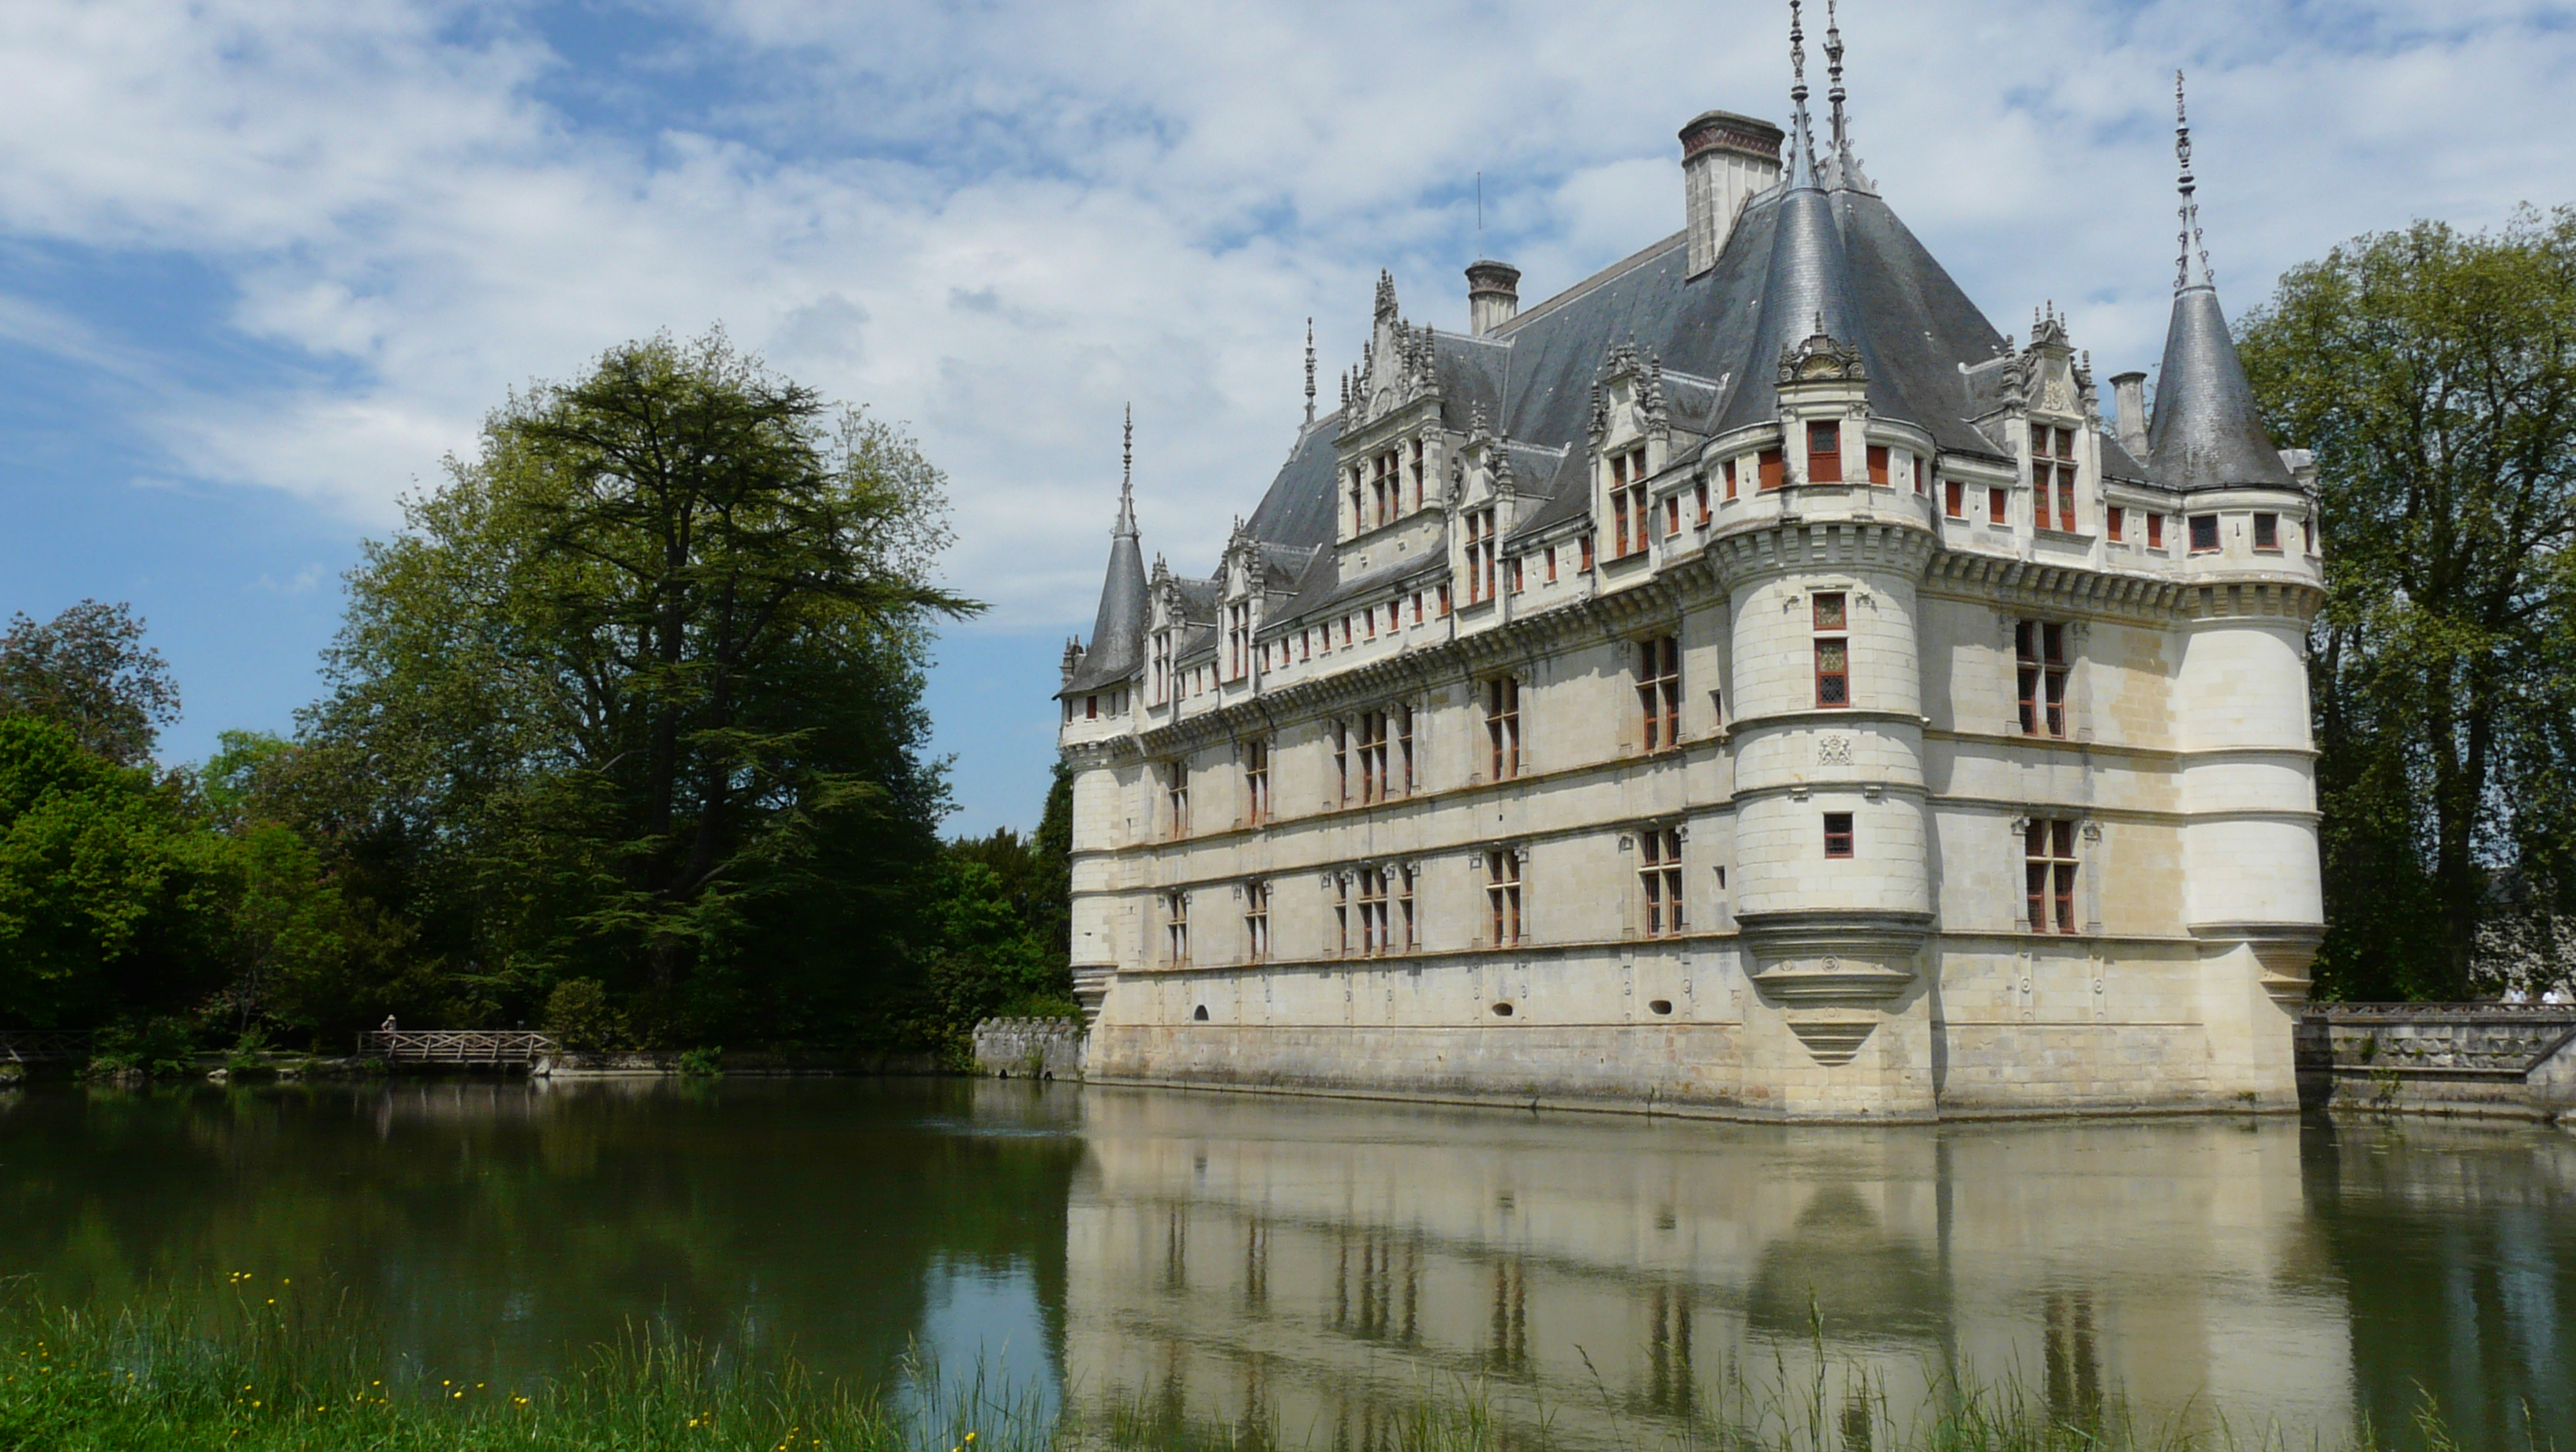 france 39 s azay le rideau chateau launches interactive historic restoration the global grid. Black Bedroom Furniture Sets. Home Design Ideas